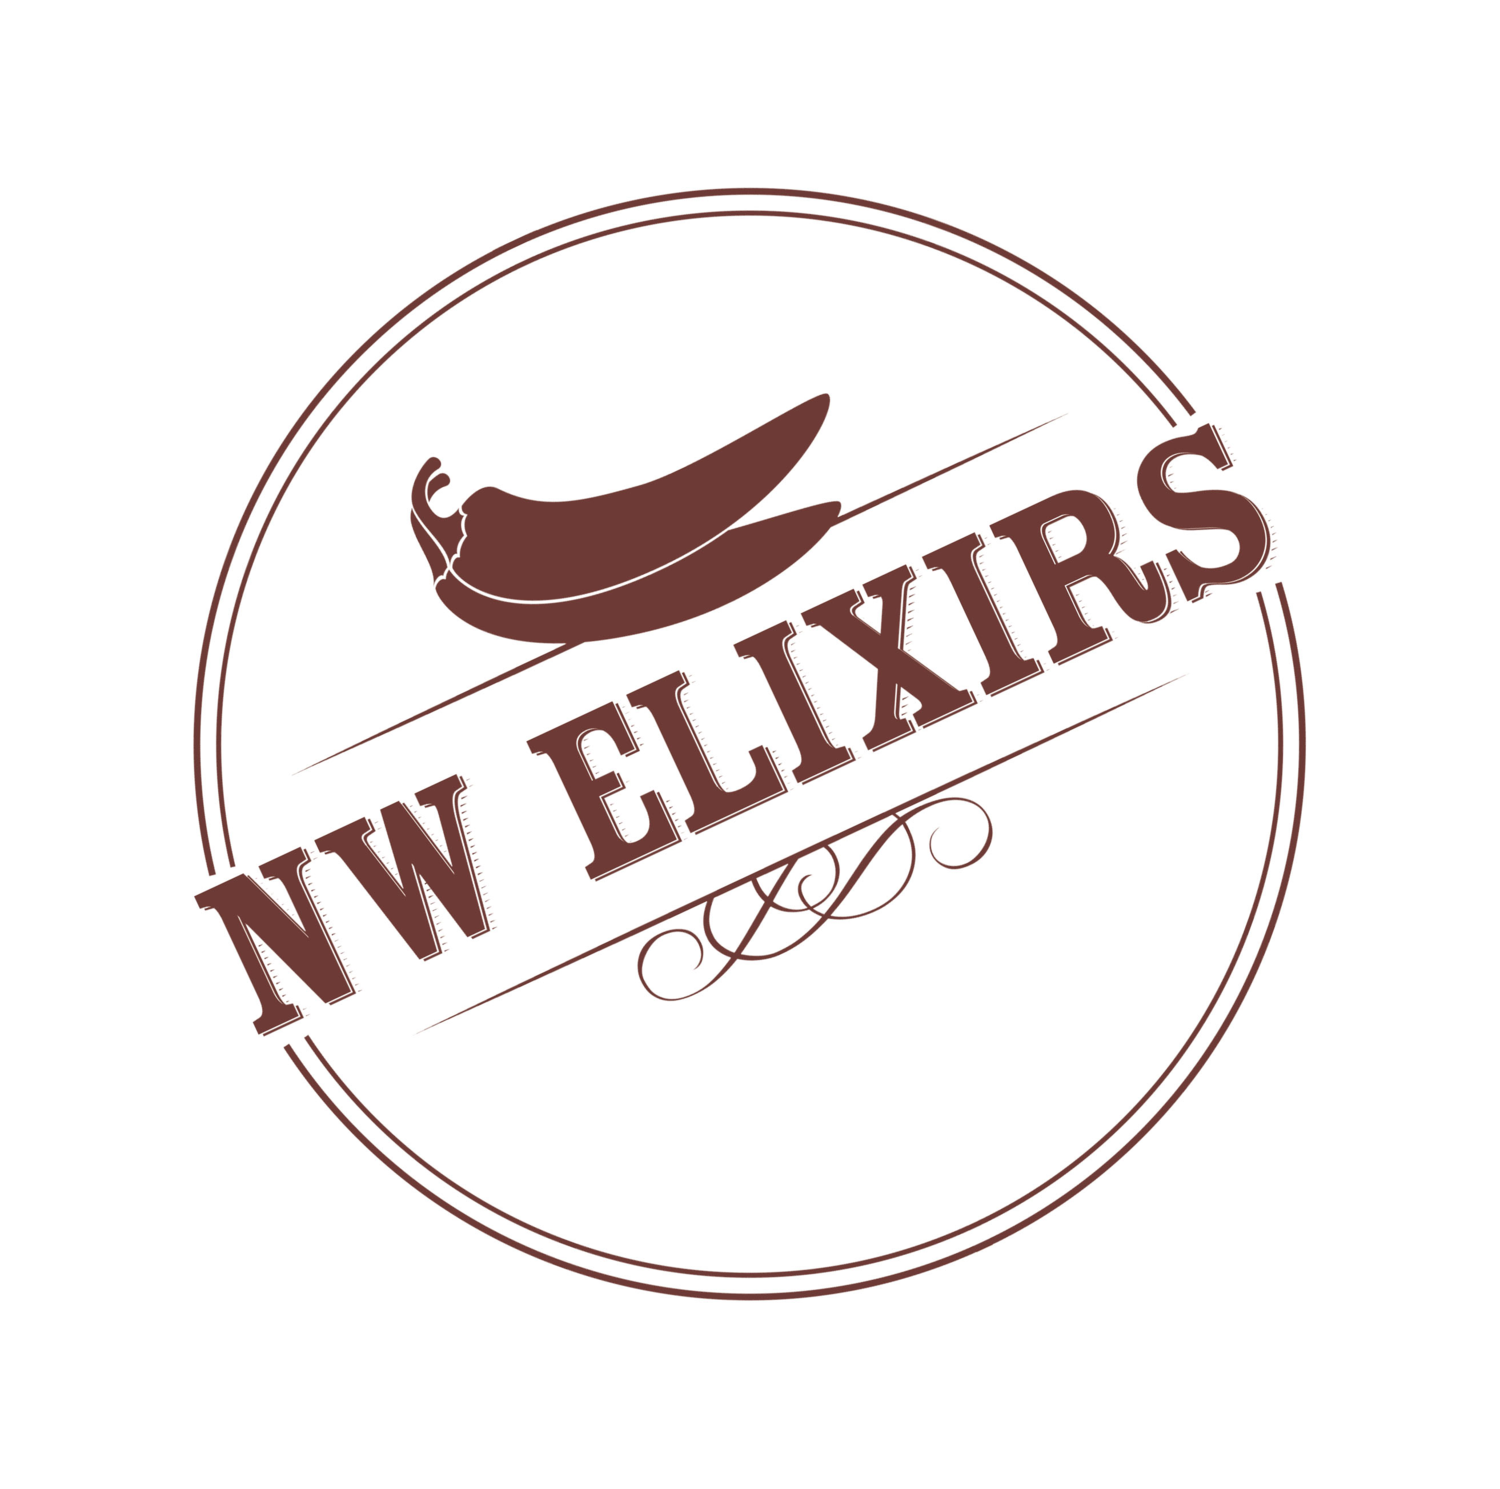 NW Elixirs: Artisan Culinary Sauce